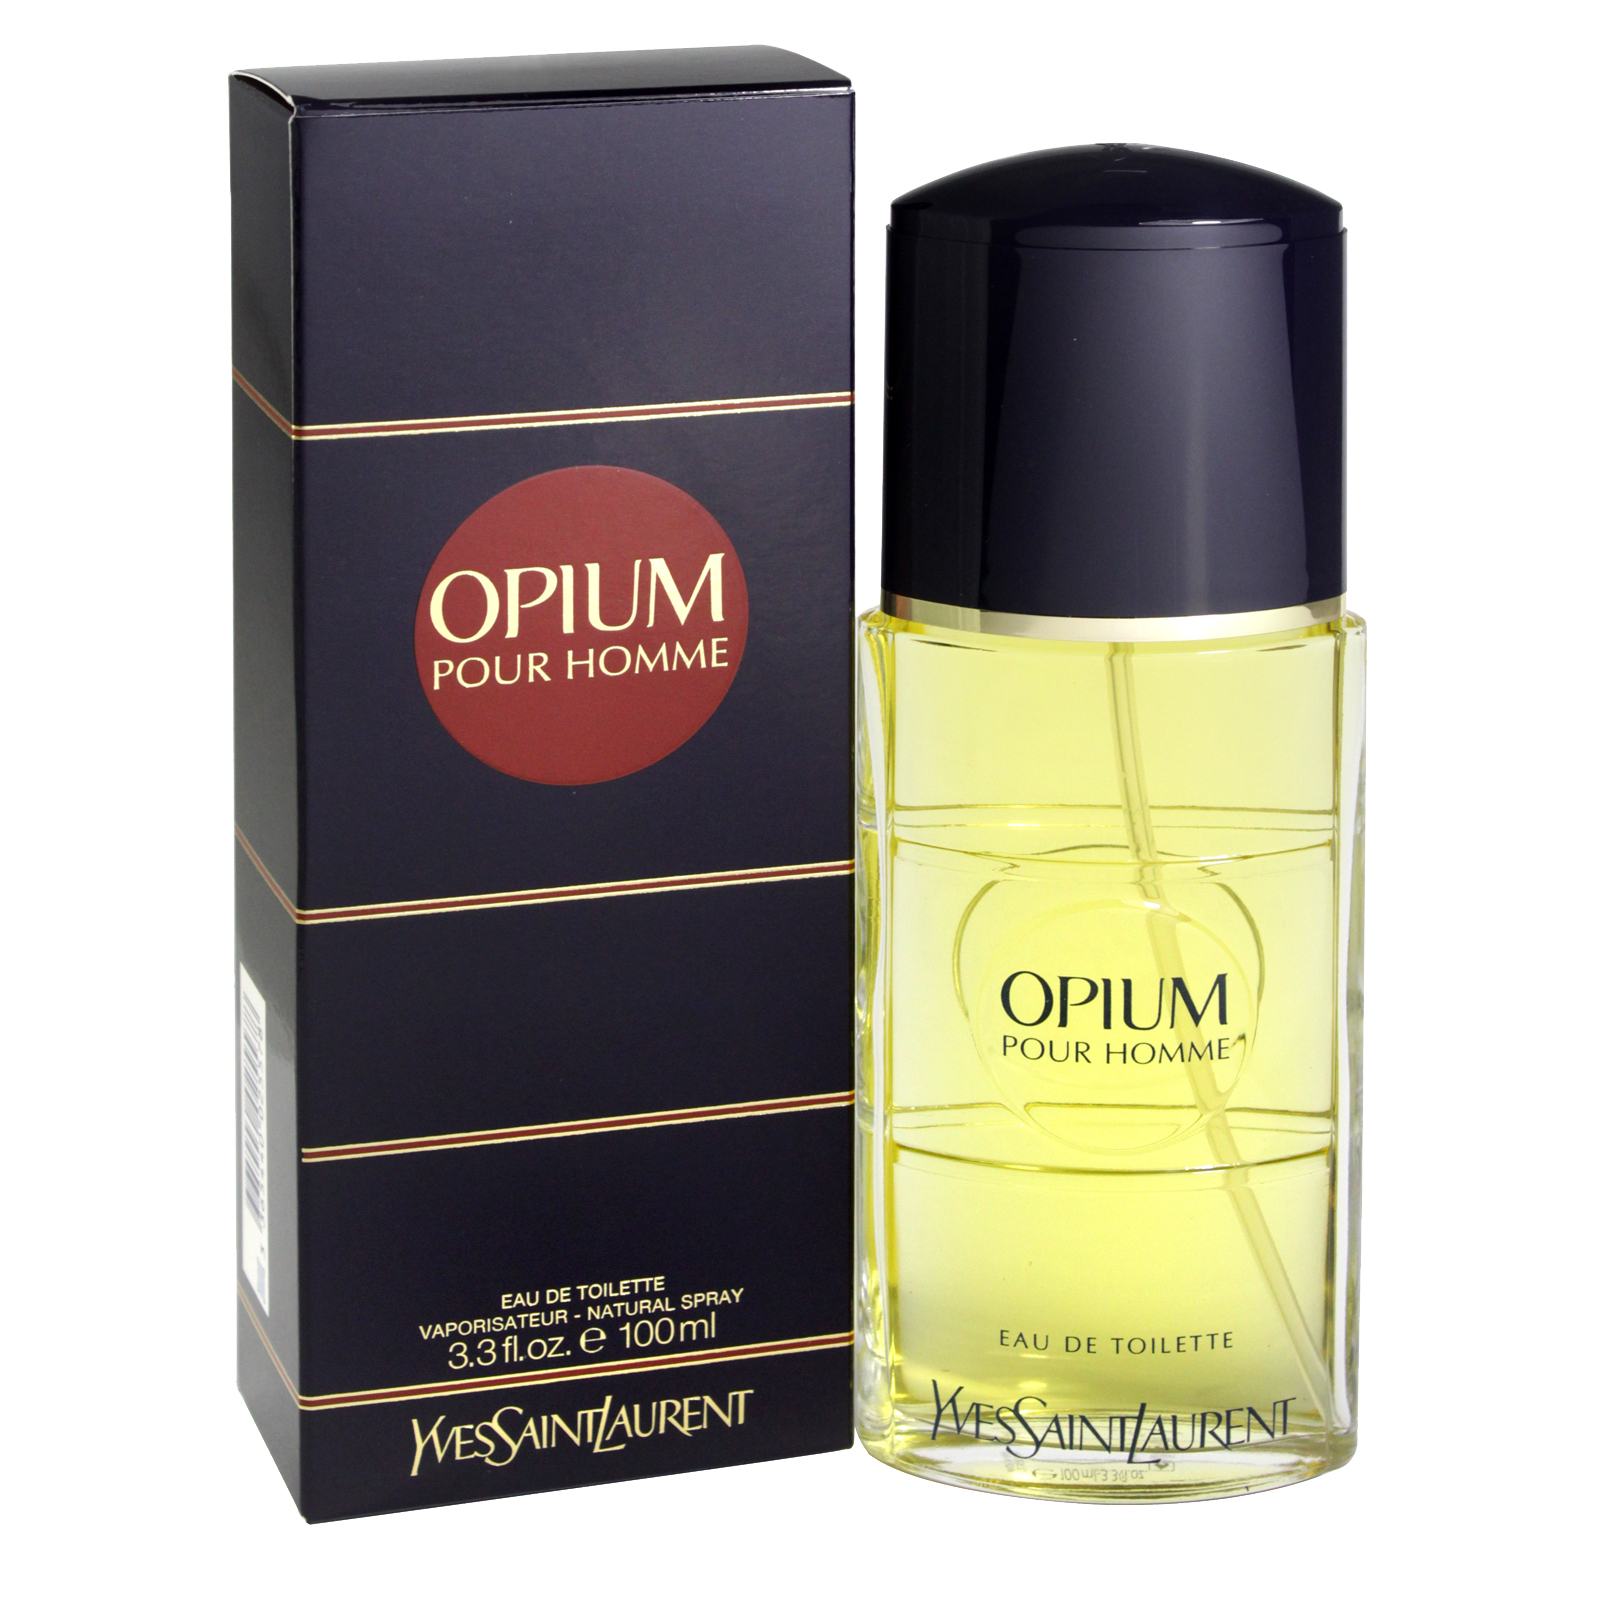 YVES SAINT LAURENT OPIUM POUR HOMME 100ML EDT SPRAY